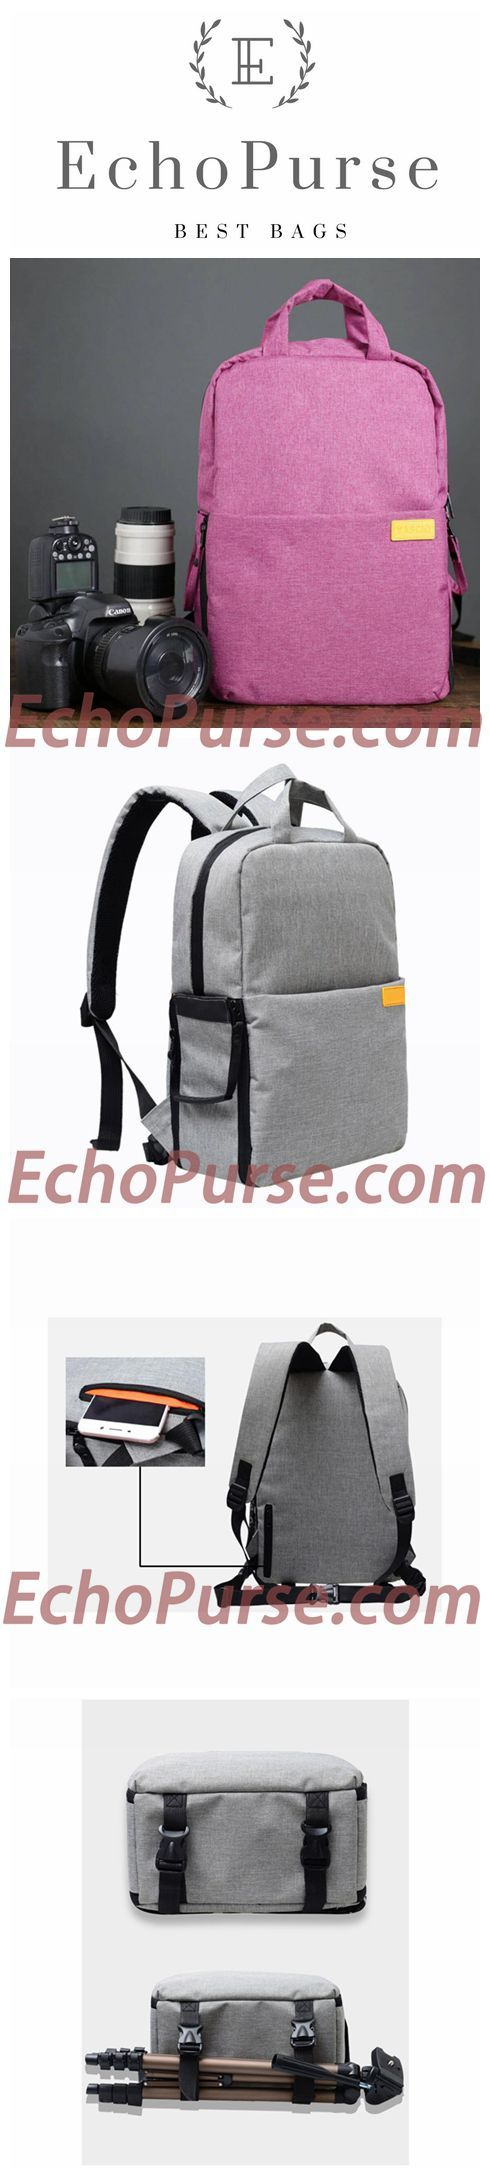 Professional Outdoor Photography Bag, Red Multifunctional Camera Backpack, Micro-Camera Pouch B530